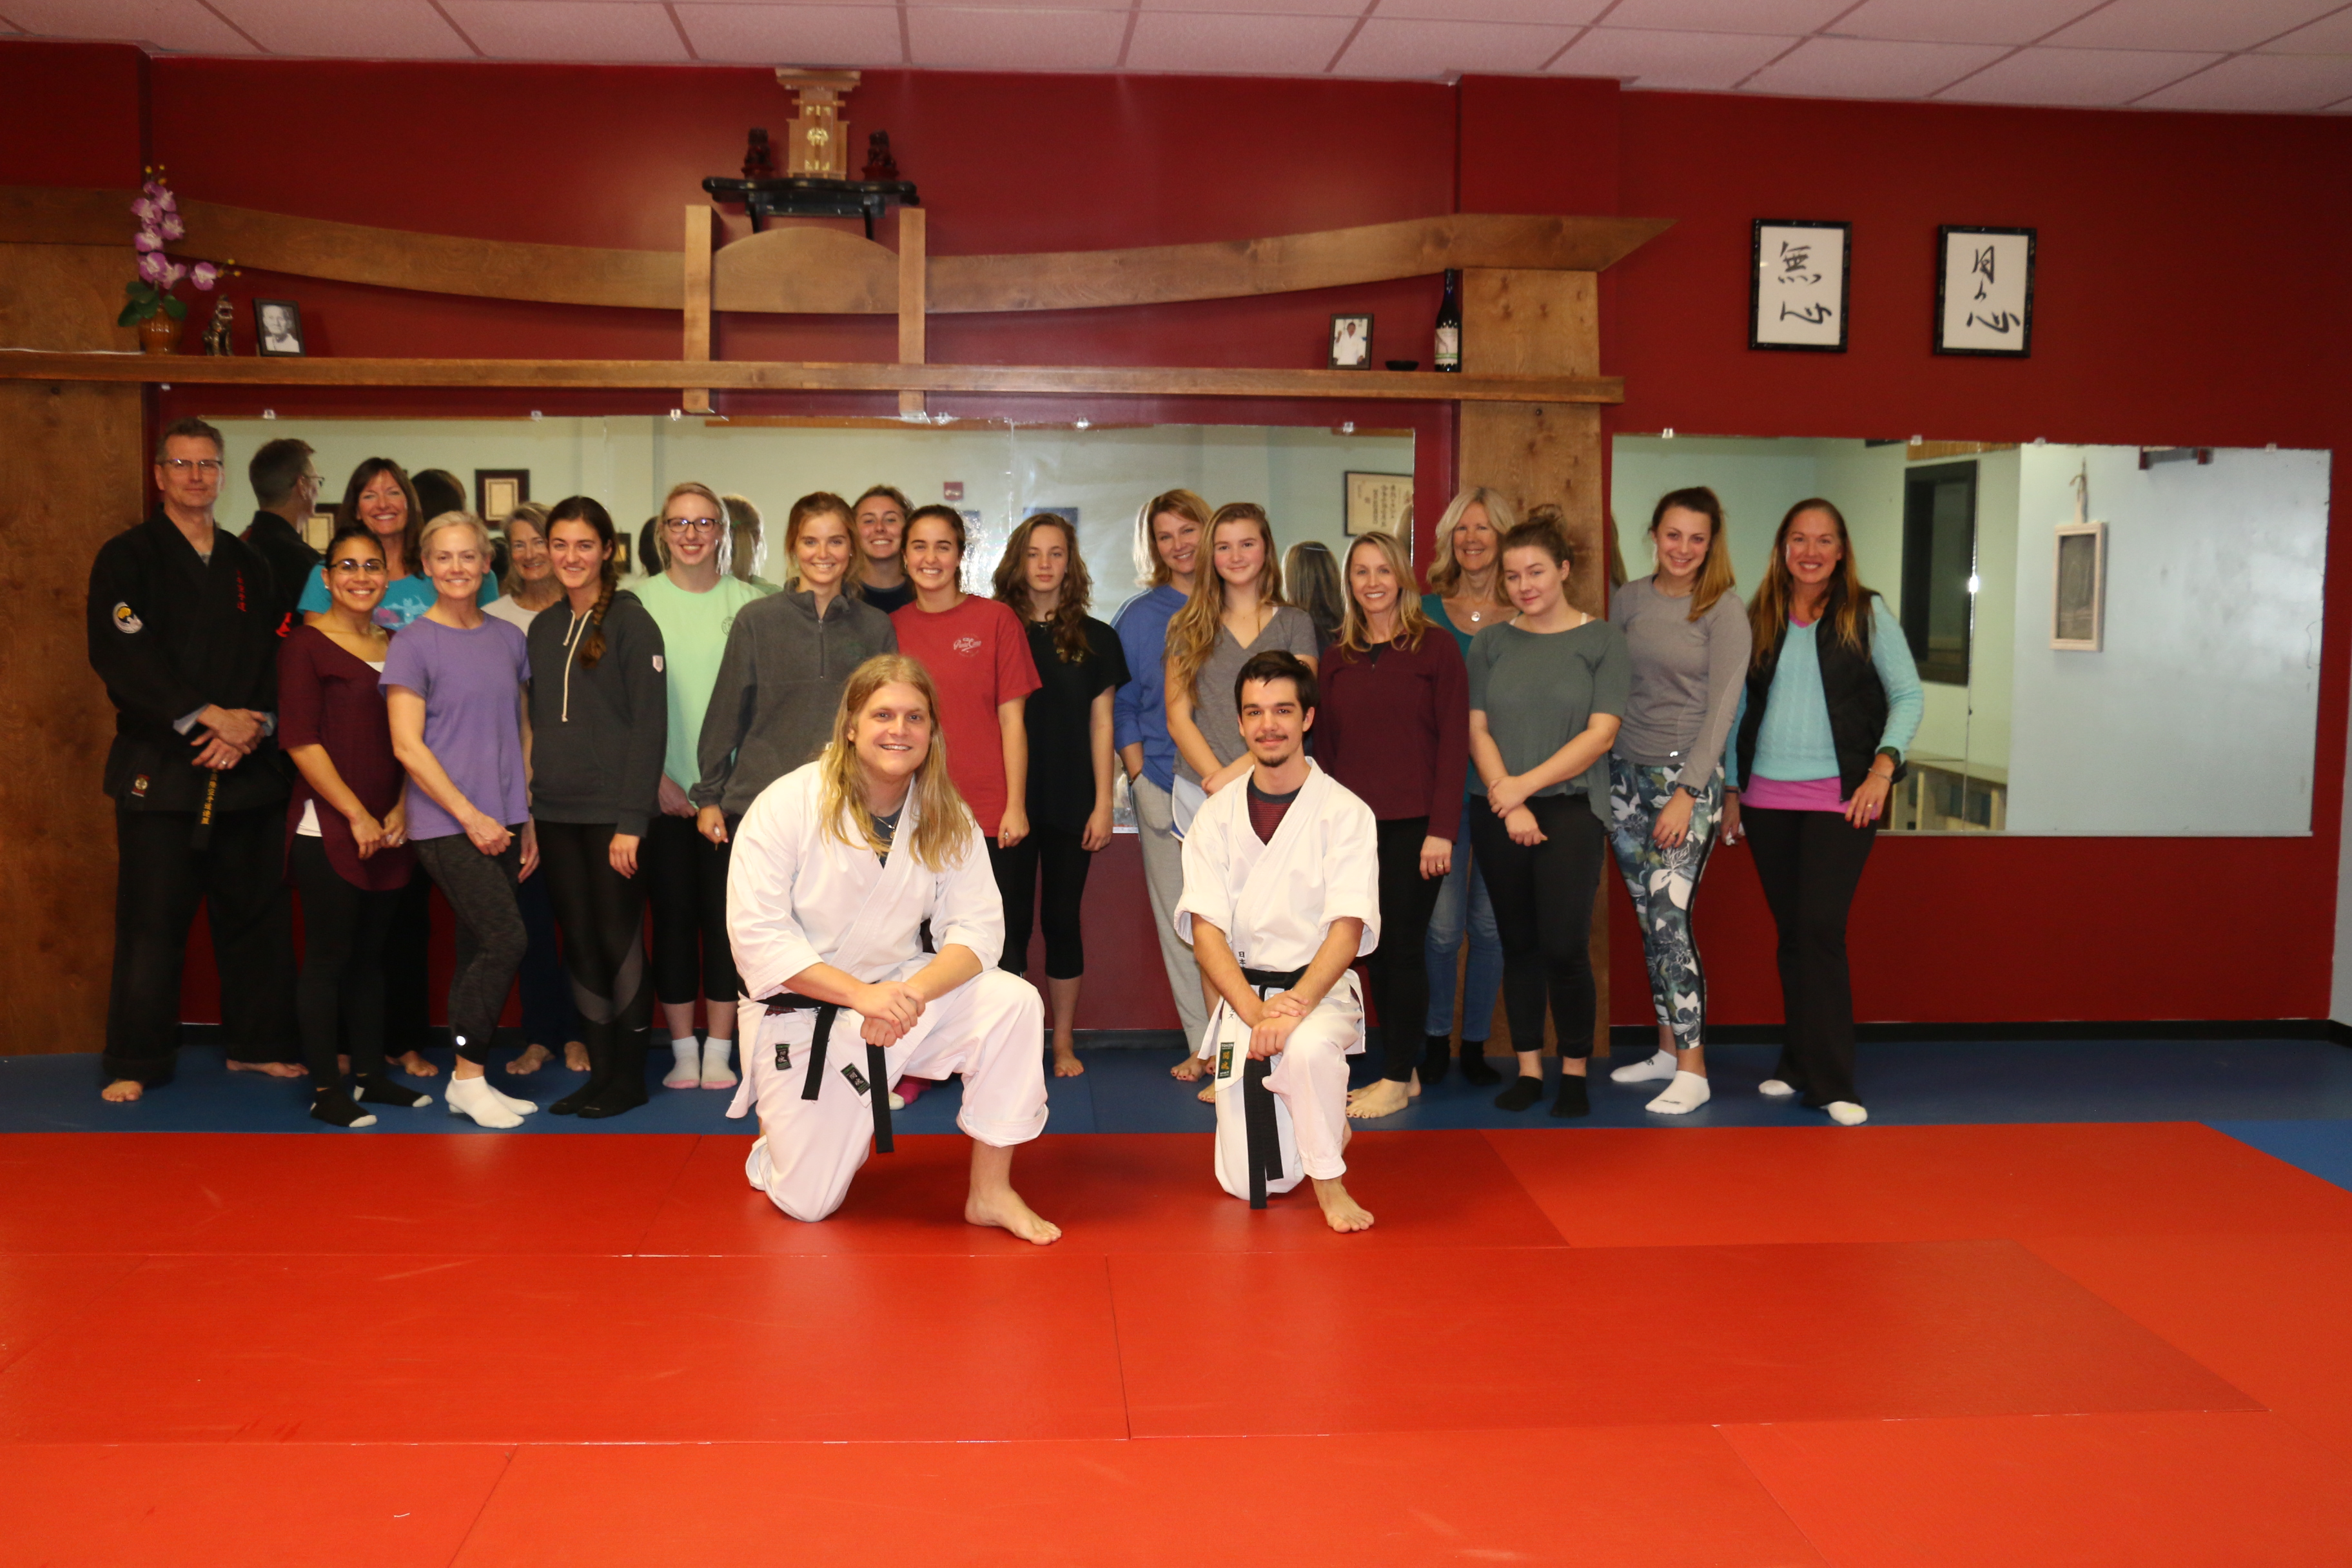 Seventeen local women attended a free women's self-defense seminar last week at the Japan Karate Institute dojo on Daniel Island. The seminar was the first of four planned throughout the year in conjunction with Japan Karate Institute's and The Daniel Island News' 15-year anniversaries. Sensei Glenn (pictured far left) and two of his instructors led the women through various defense techniques, including sharp knuckles, pressure points, eye pokes, escapes and the use of household items. The best self-defense technique: awareness of your surroundings.